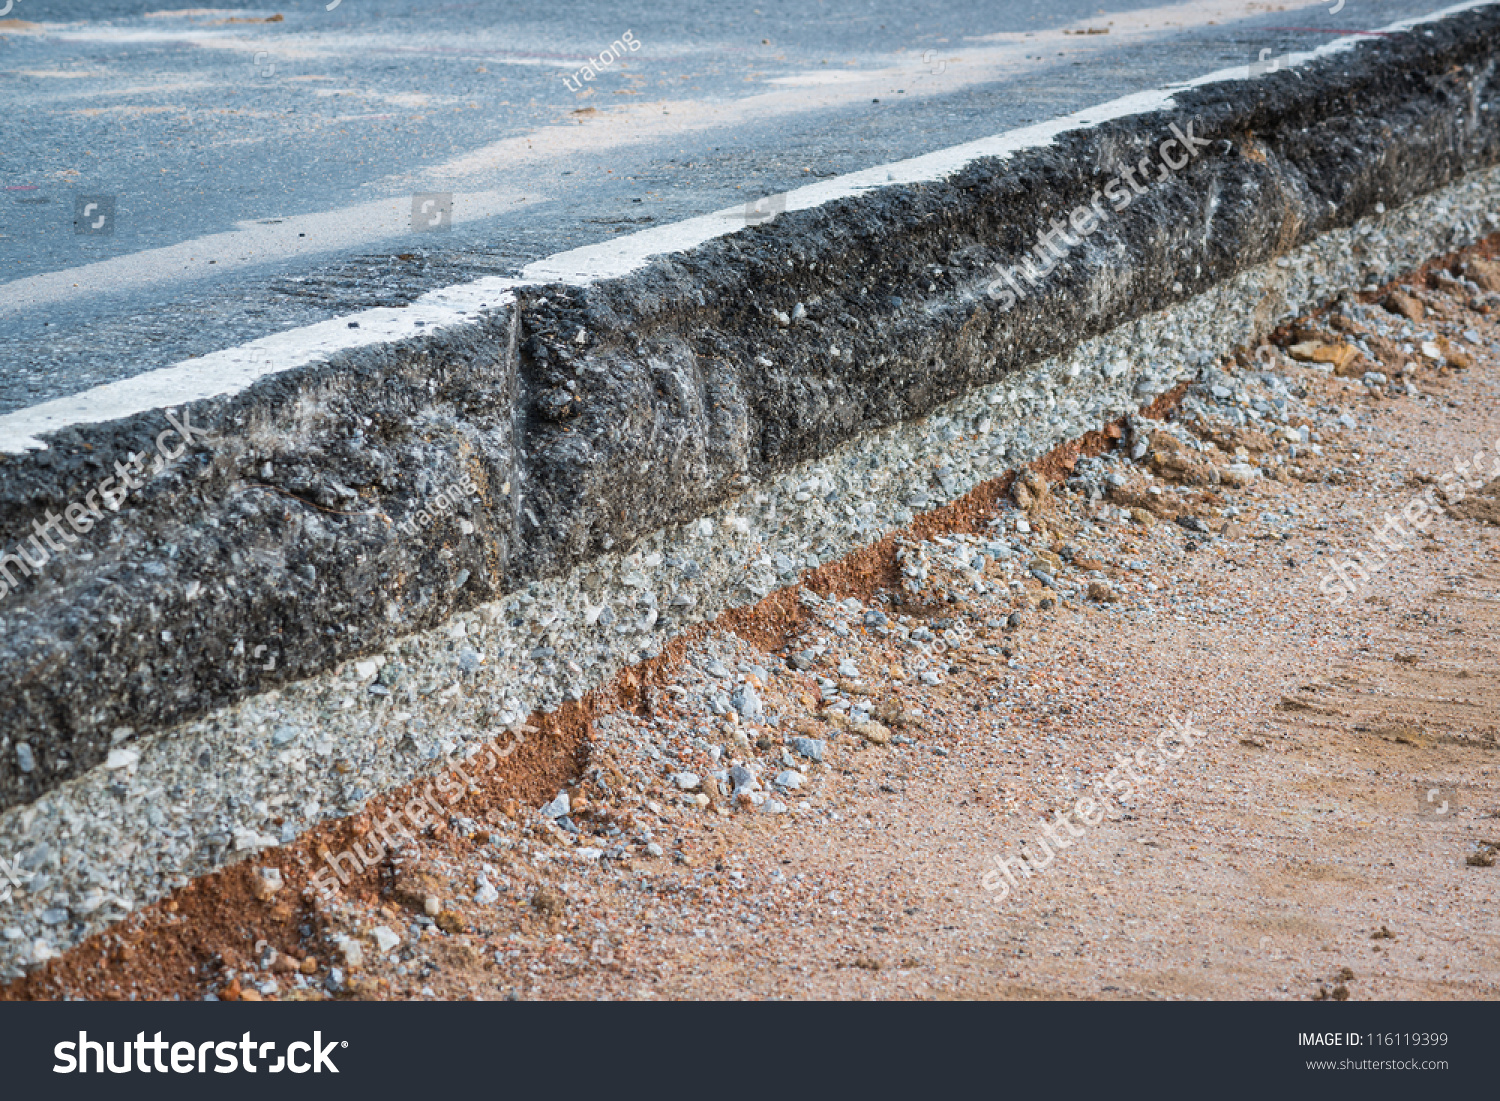 construction of pavement layers This study investigated the influence of several construction practices on the bond strength at the interface between pavement layers these practices included the surface treatment, curing time, residual application rate, and equipment tracking.